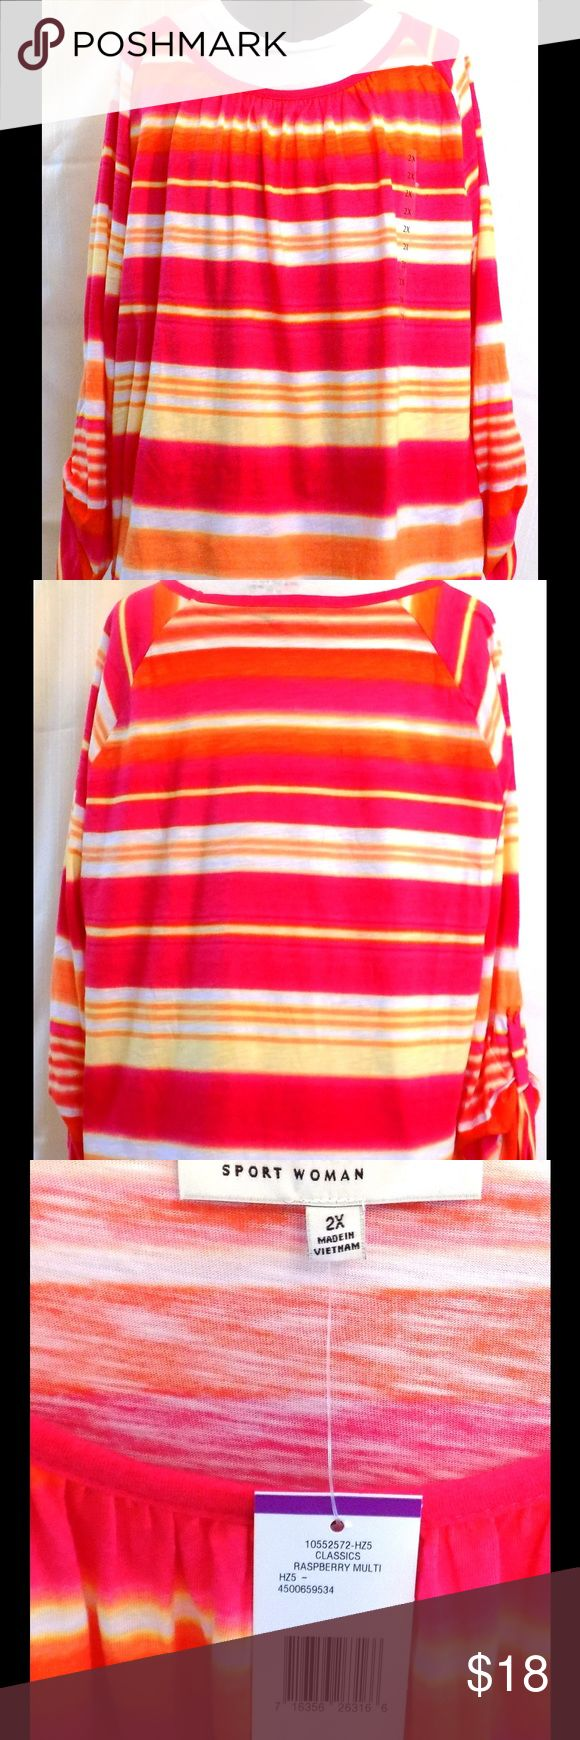 "Jones New York Pink Stripe Blouse Plus Size 2X Cotton pullover, 3/4 raglan sleeves with button band to shorten. Bust 50"", back length 25"". Excellent condition. Jones New York Tops Blouses"